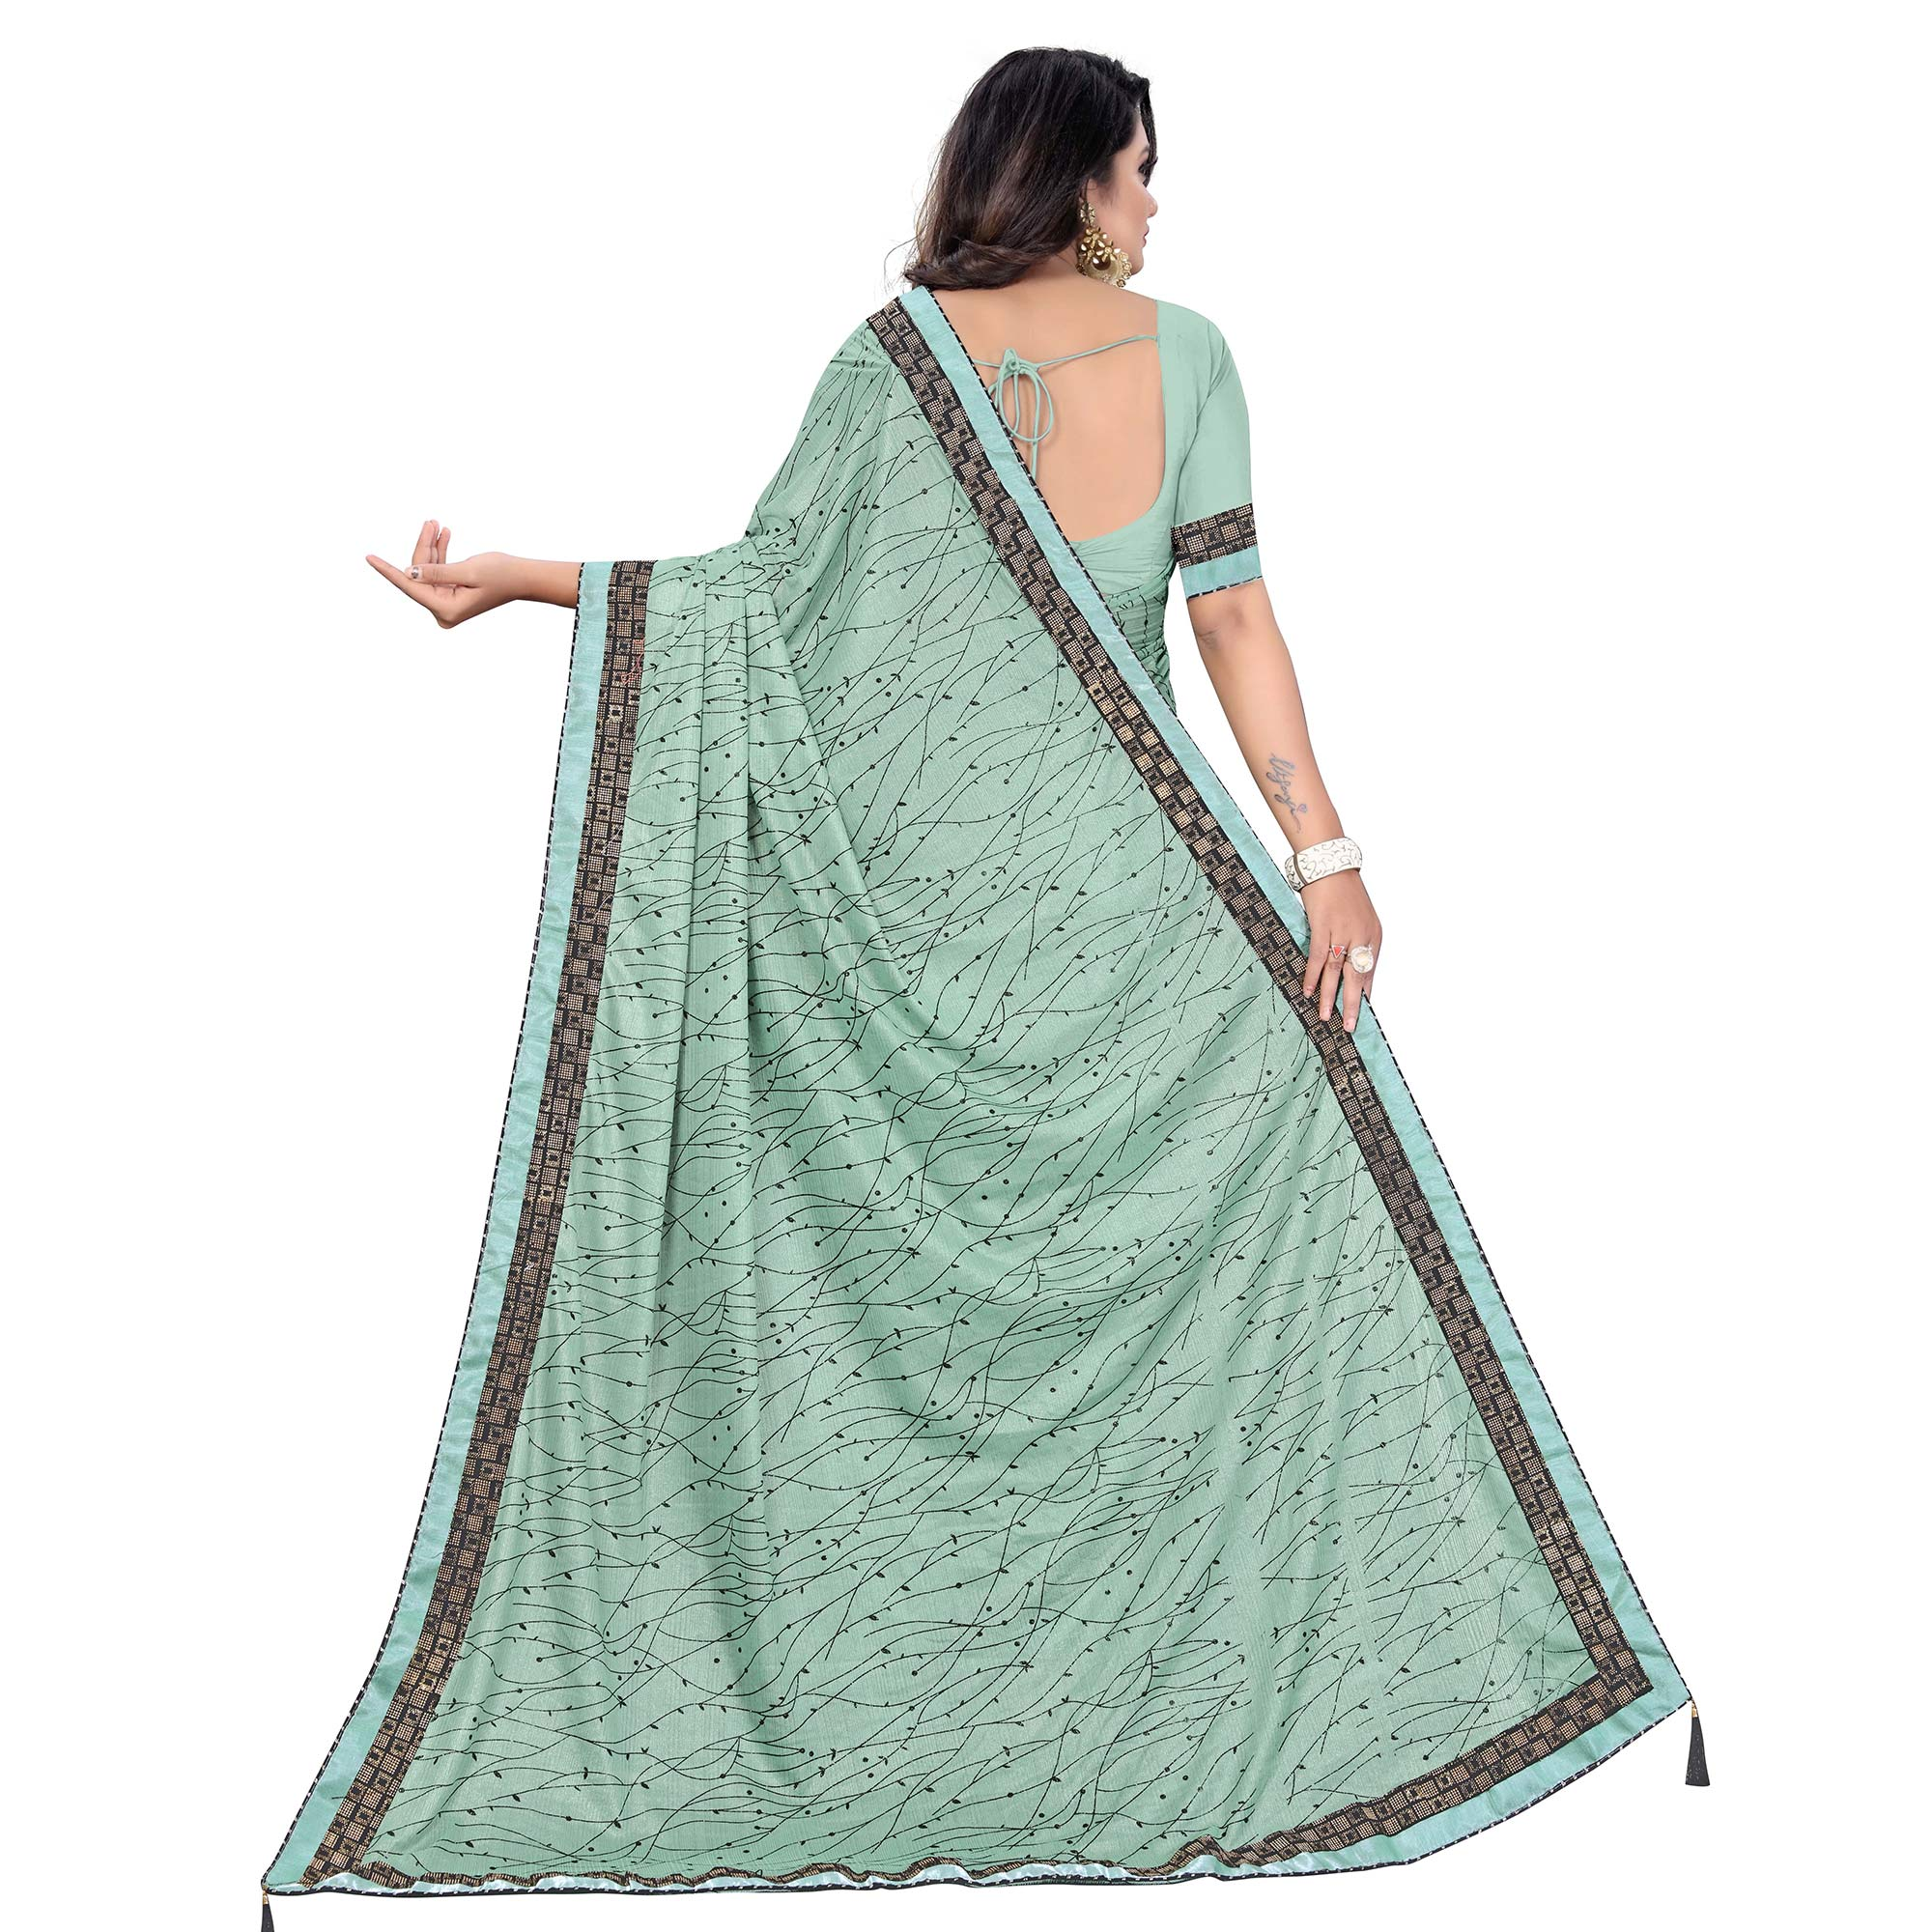 Radiant Blue Colored Party Wear Printed Lycra Blend Saree